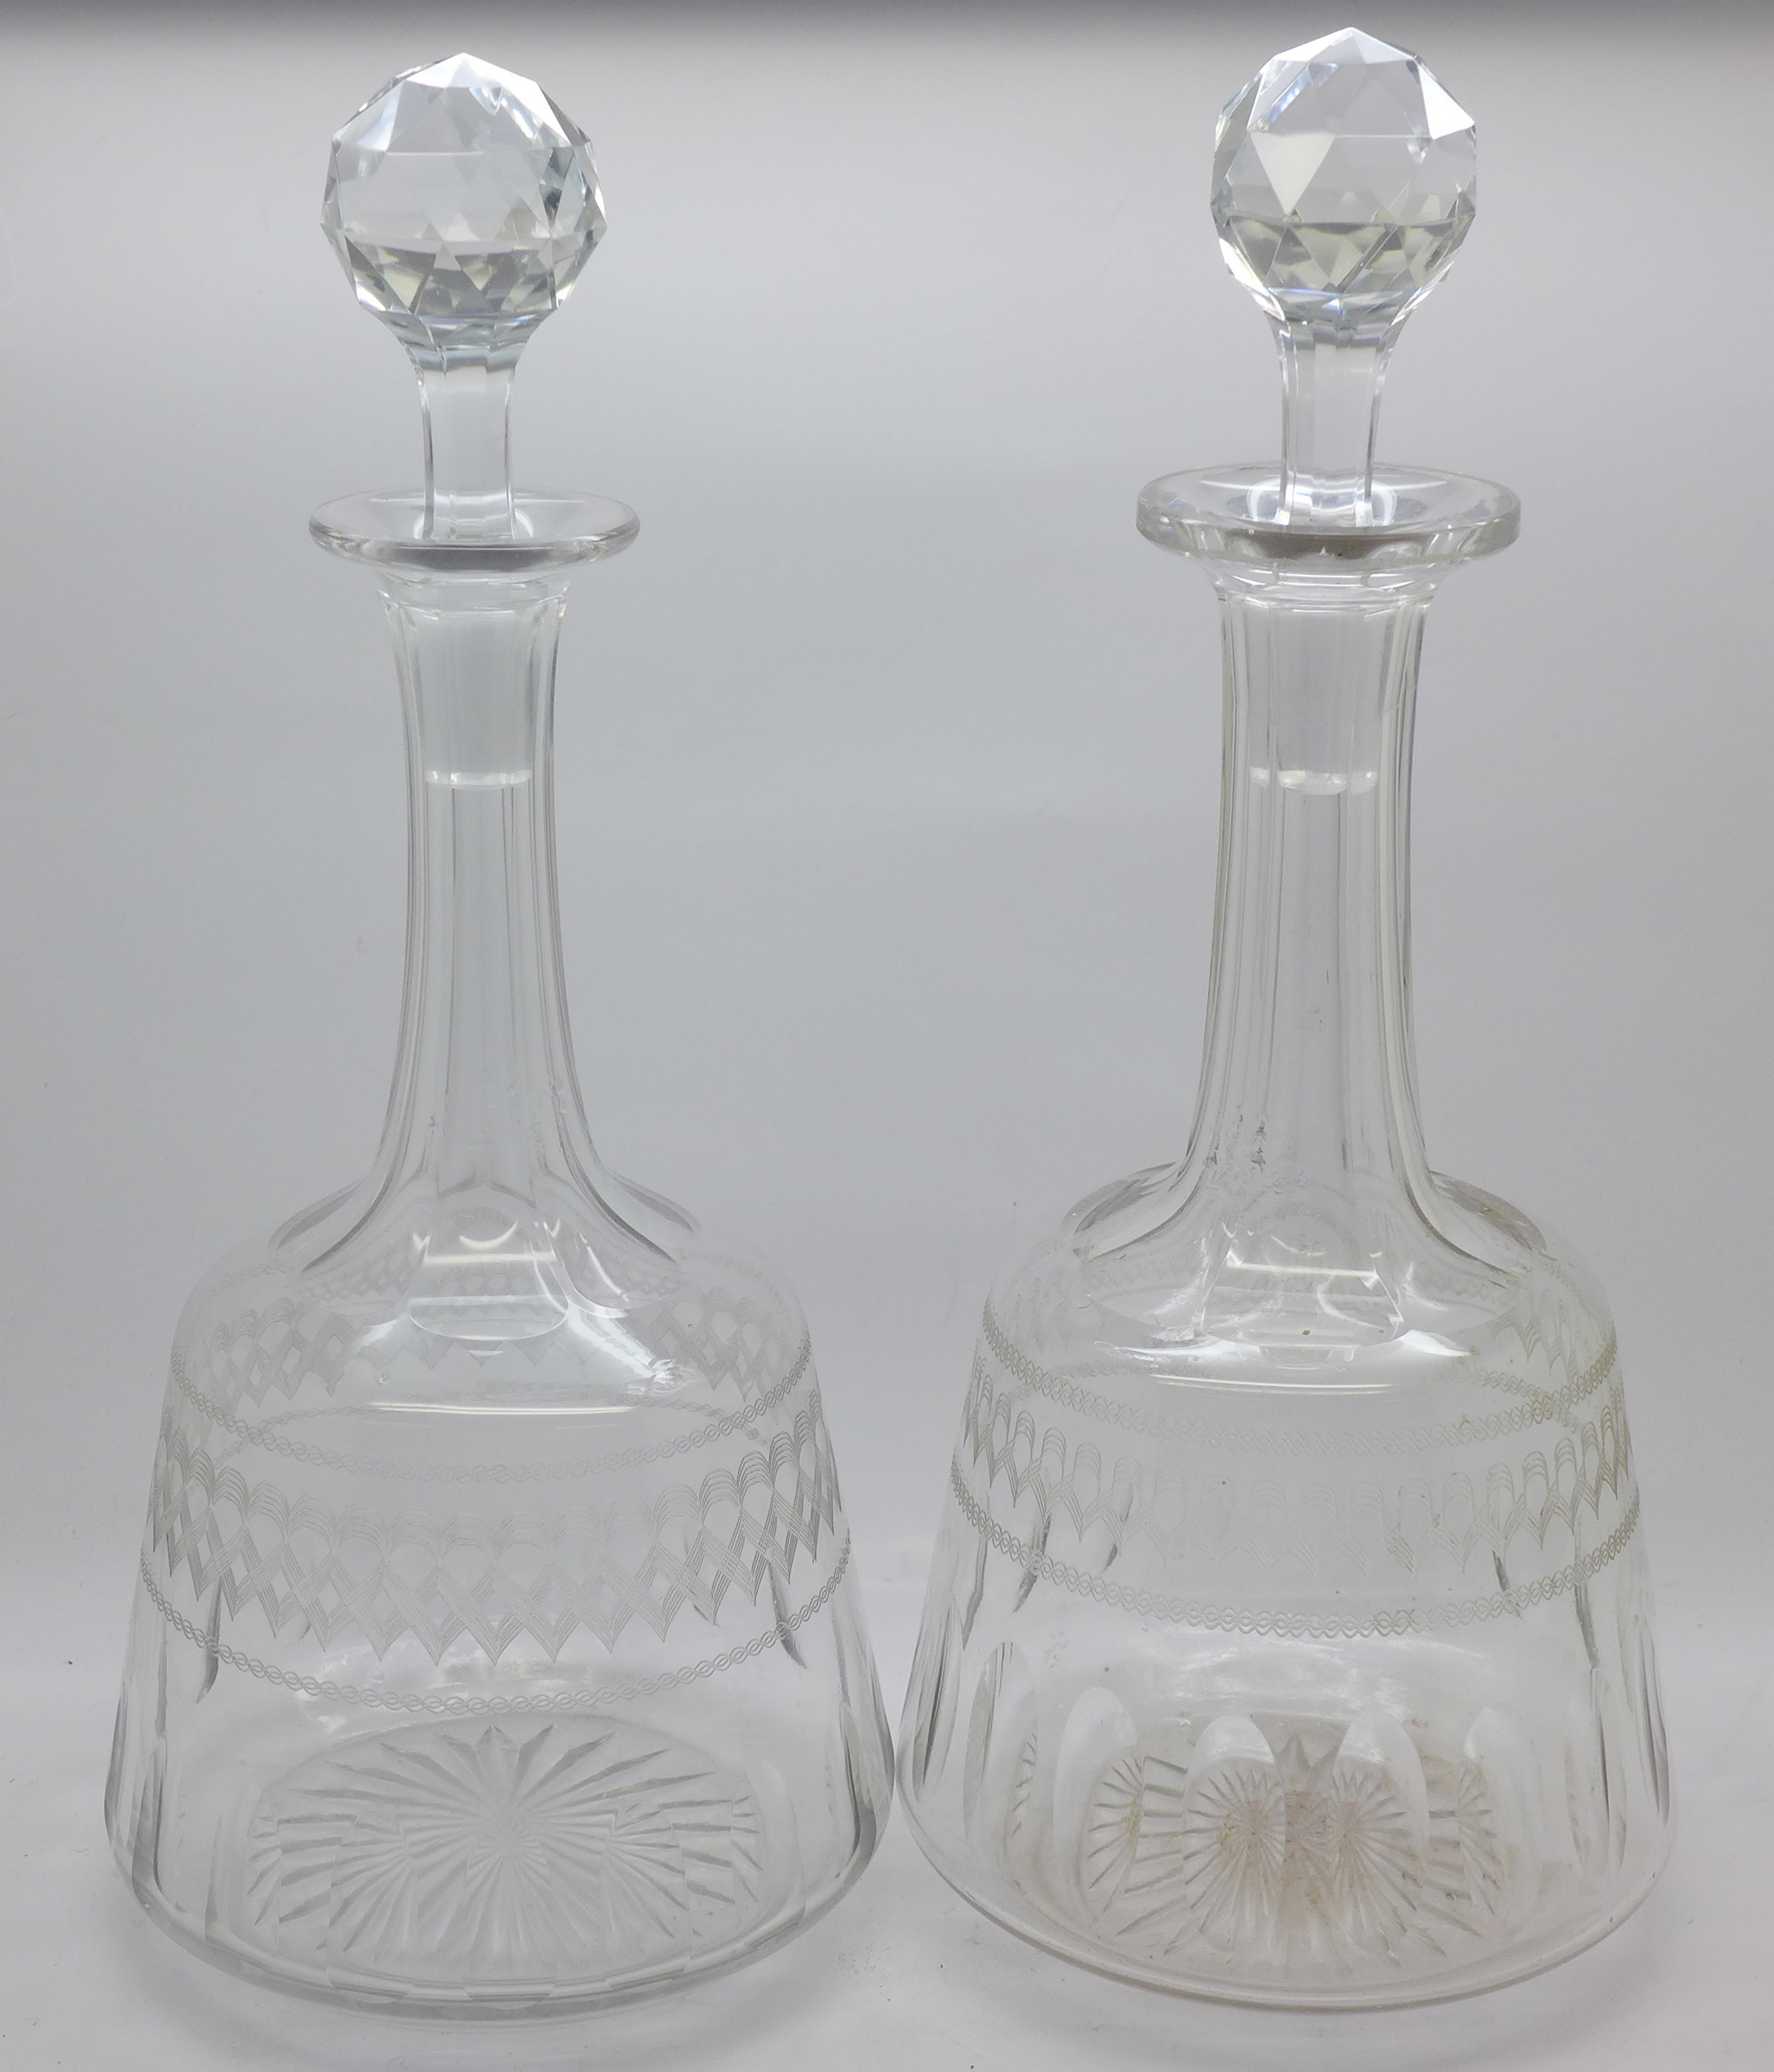 Lot 626 - A pair of etched glass decanters